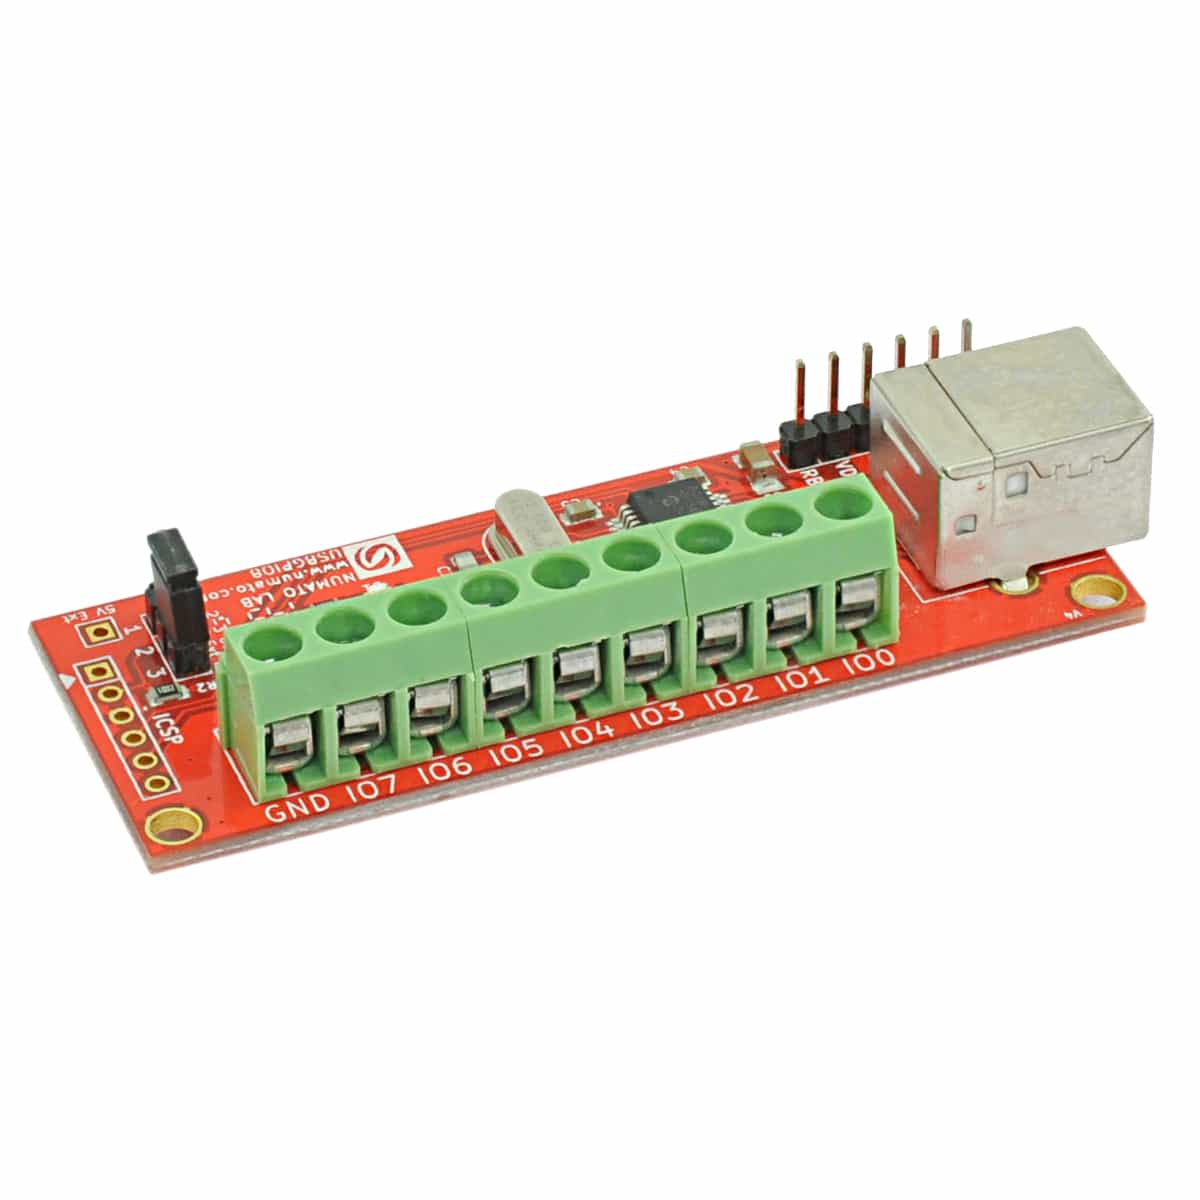 8 Channel Usb Gpio Module With Analog Inputs Numato Lab Raspberry Pi Shield For Dummies Experimental Board Digital